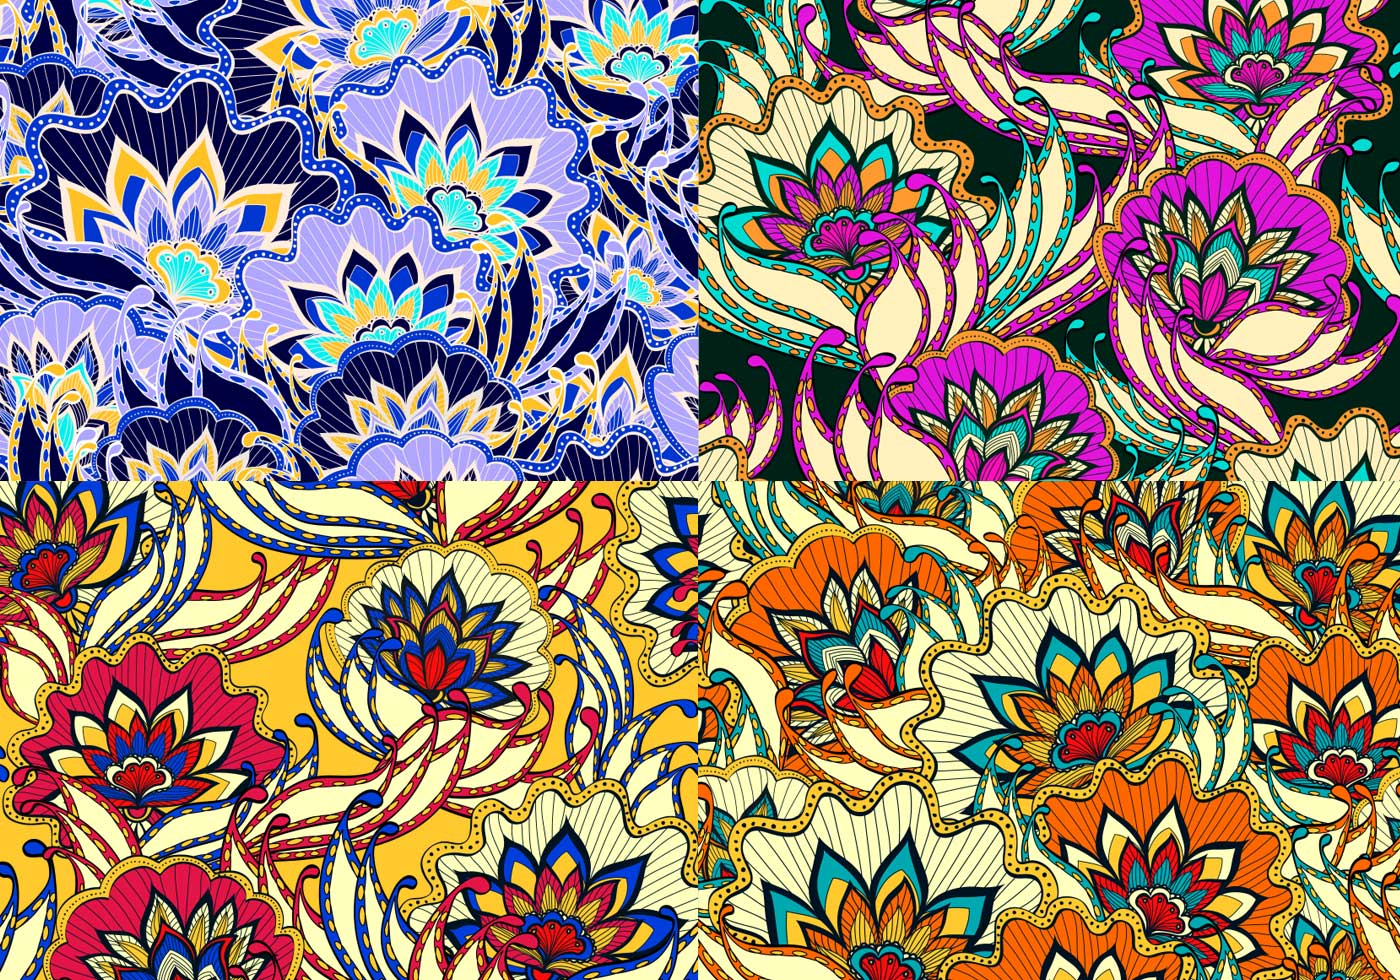 Vintage Floral Patterns - Free Photoshop Brushes at Brusheezy!